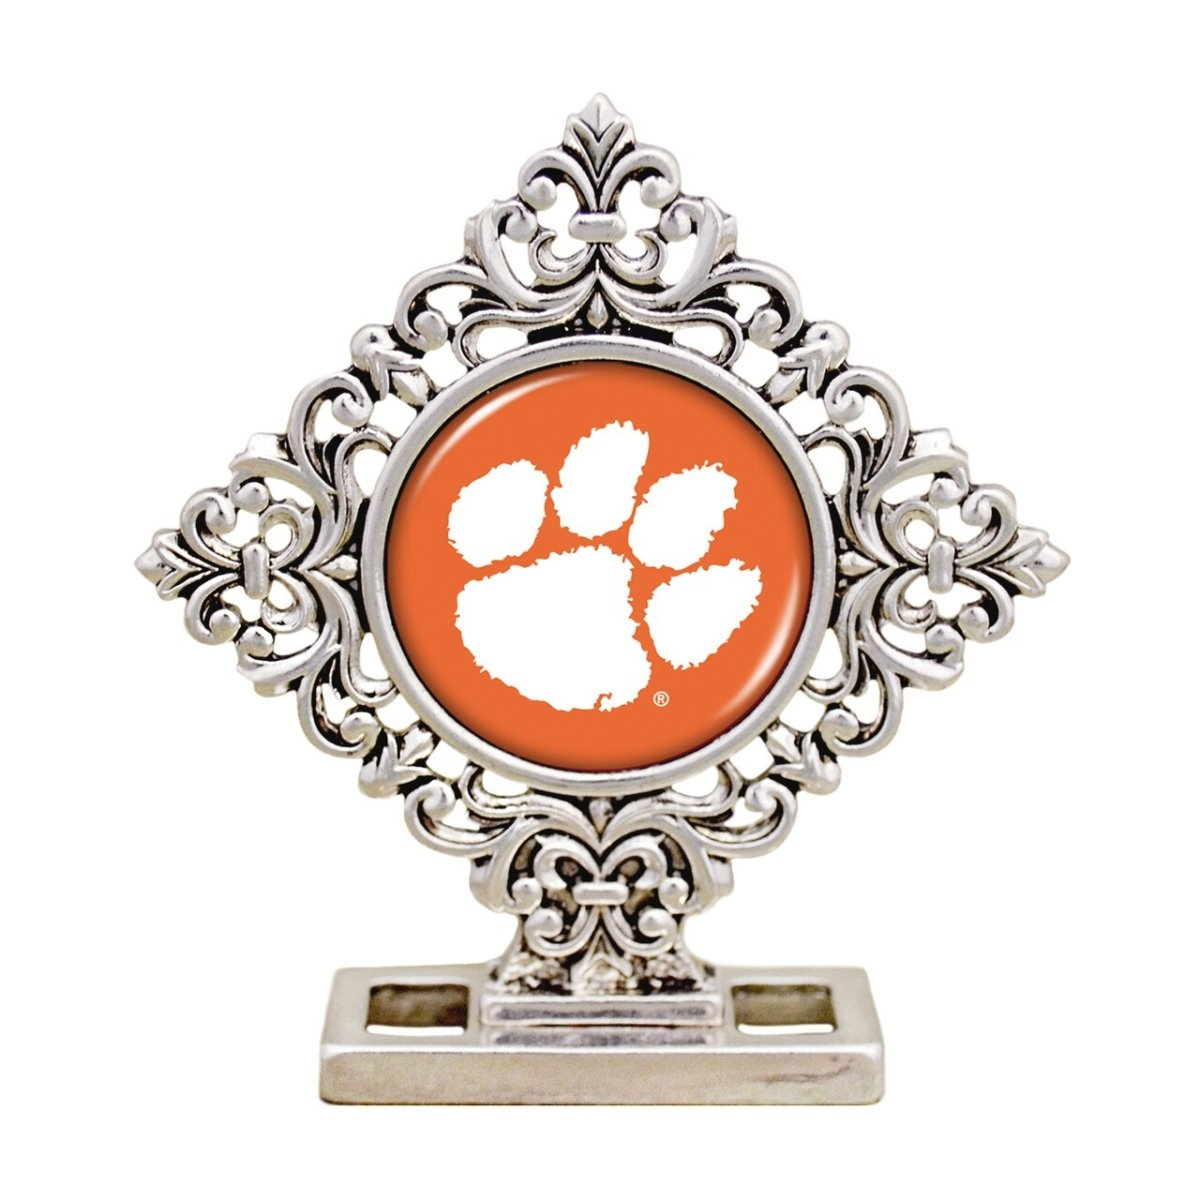 Silver Desk Decor Diamond Shape Orange White Paw - Mr. Knickerbocker